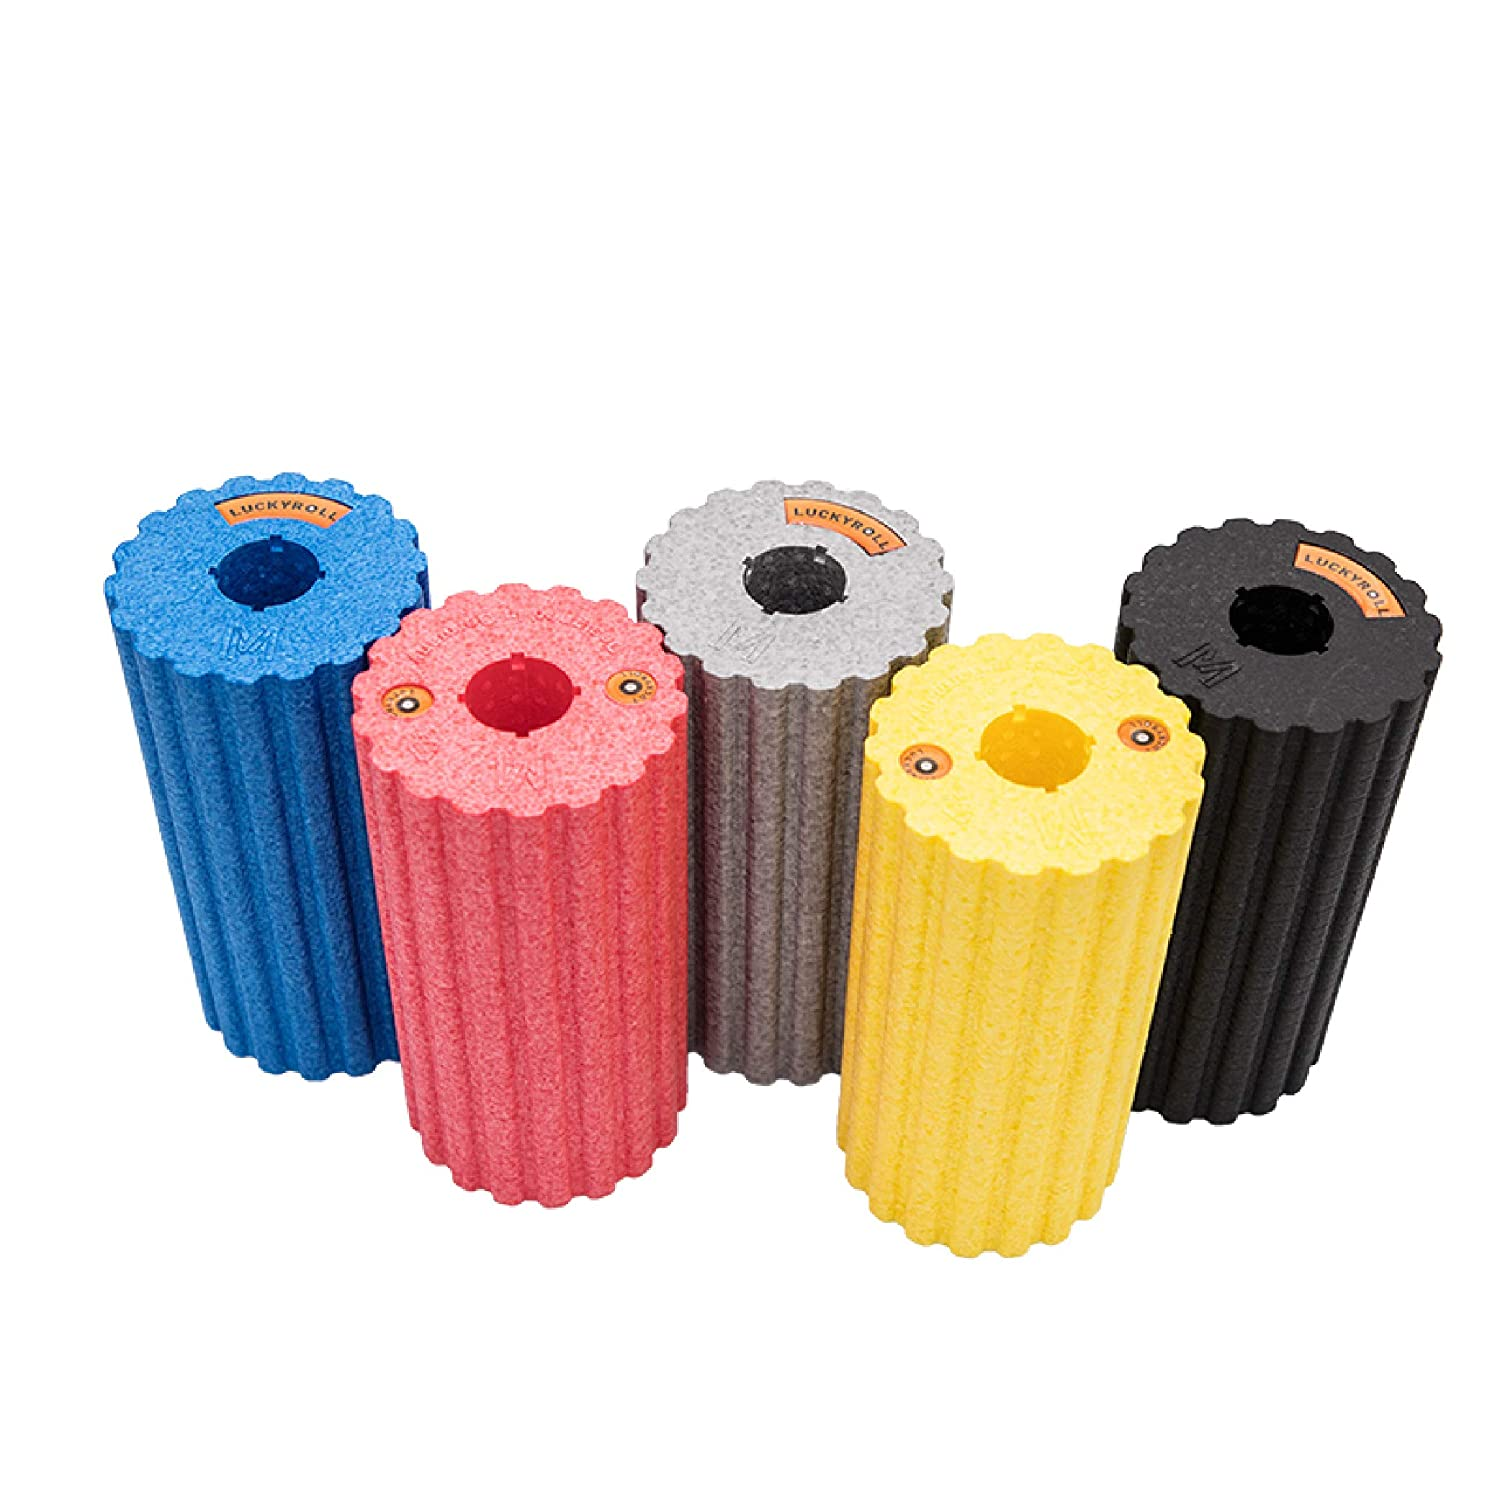 Amazon.com : LUCKYROLL Physical Therapy EPP Foam Roller for ...